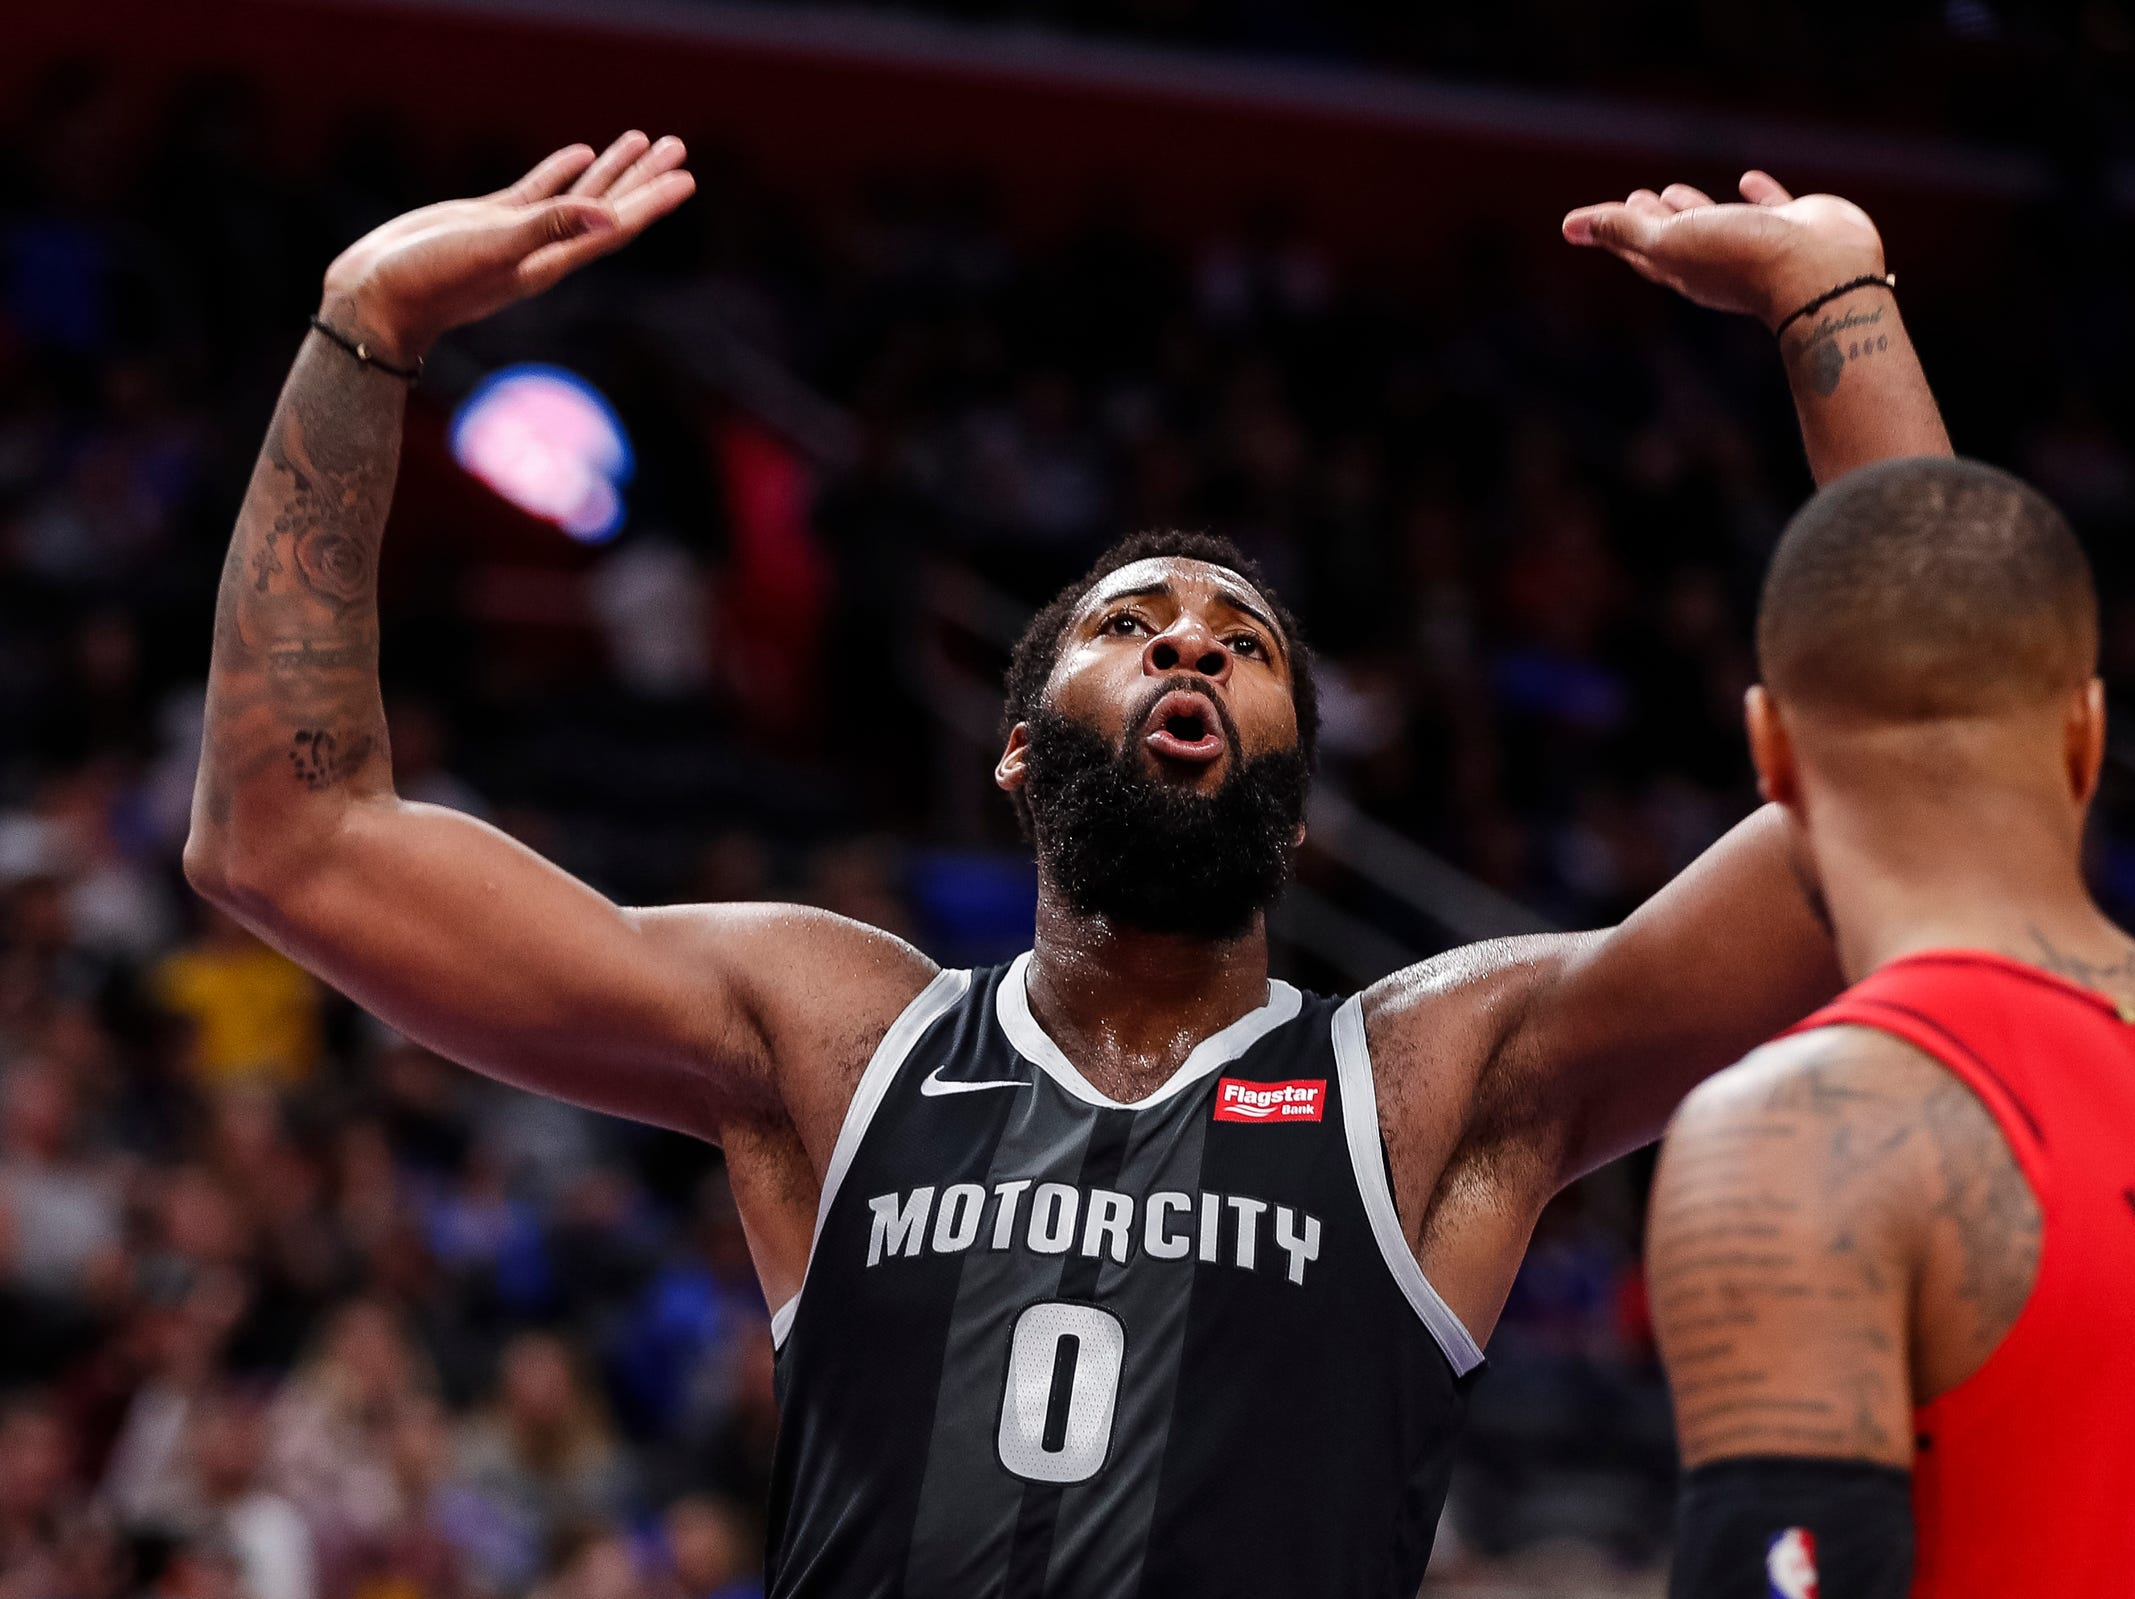 Pistons center Andre Drummond (0) celebrates a dunk against Trail Blazers during the second half of the Pistons' 99-90 win over the Trail Blazers on Saturday, March 30, 2019, at Little Caesars Arena.